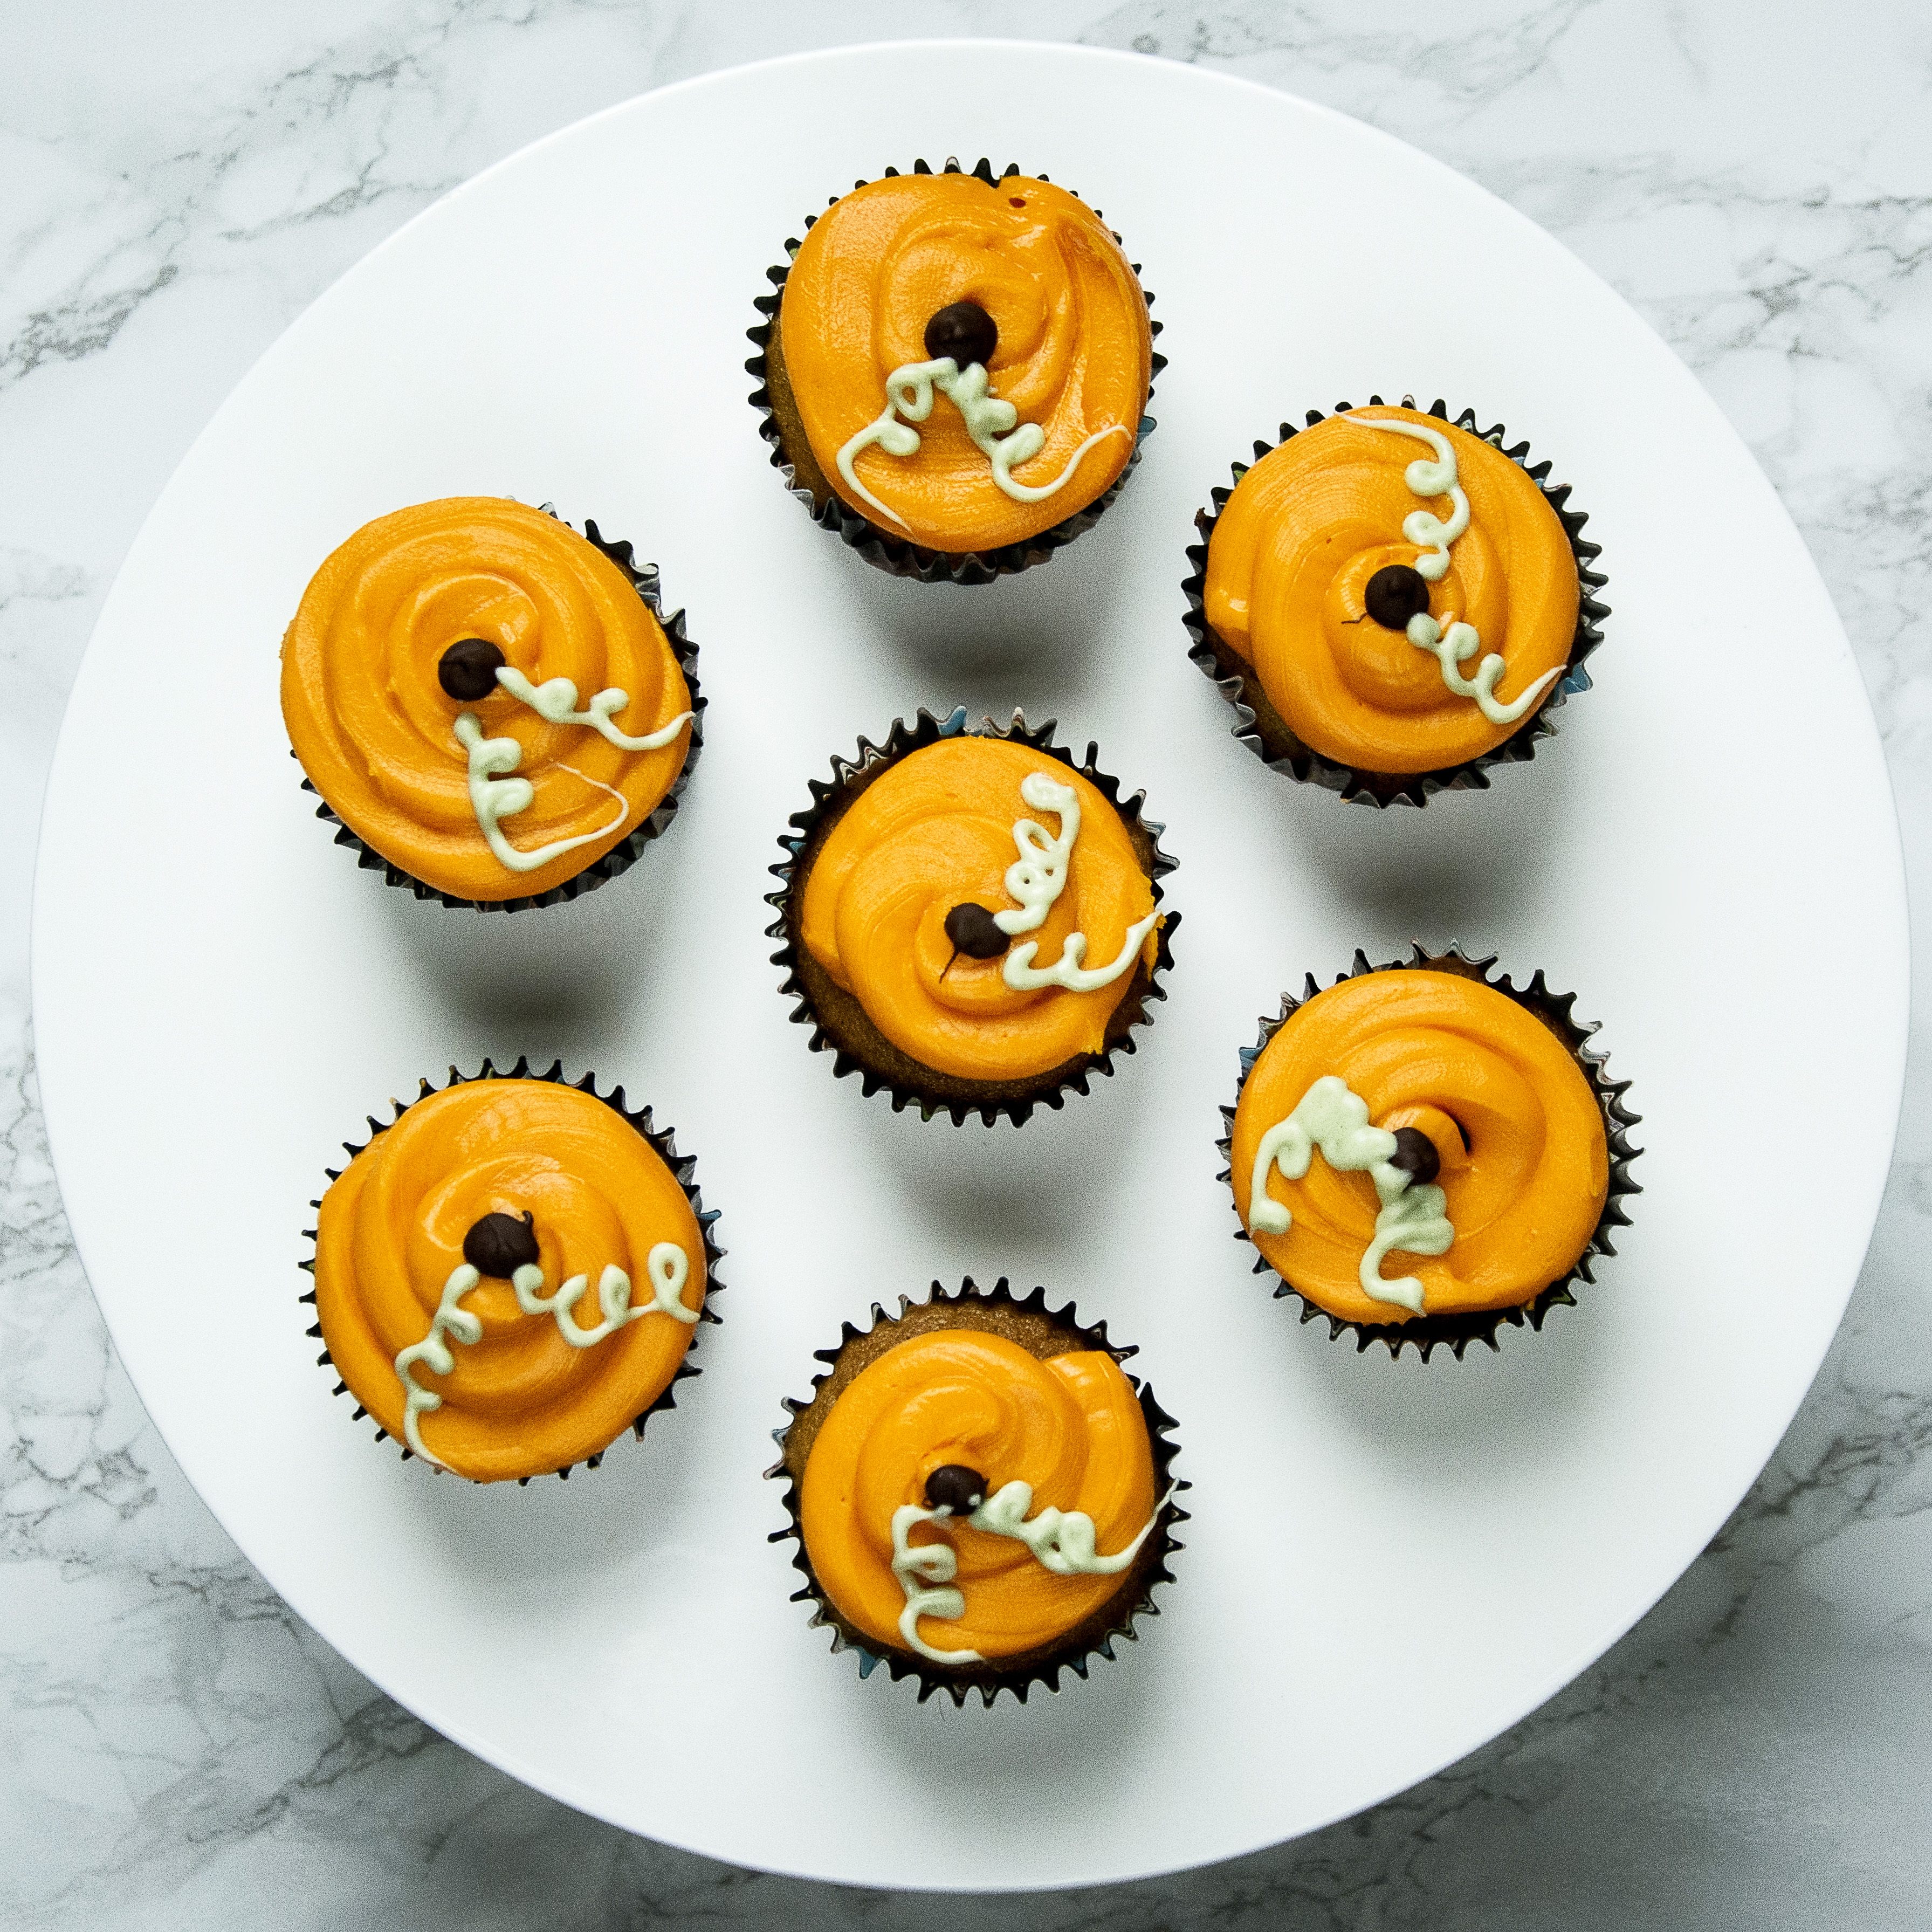 Pumpkin Cupcakes - Whats Eating Manchester Halloween Cupcakes Pumpkin spiced halloween cupcakes